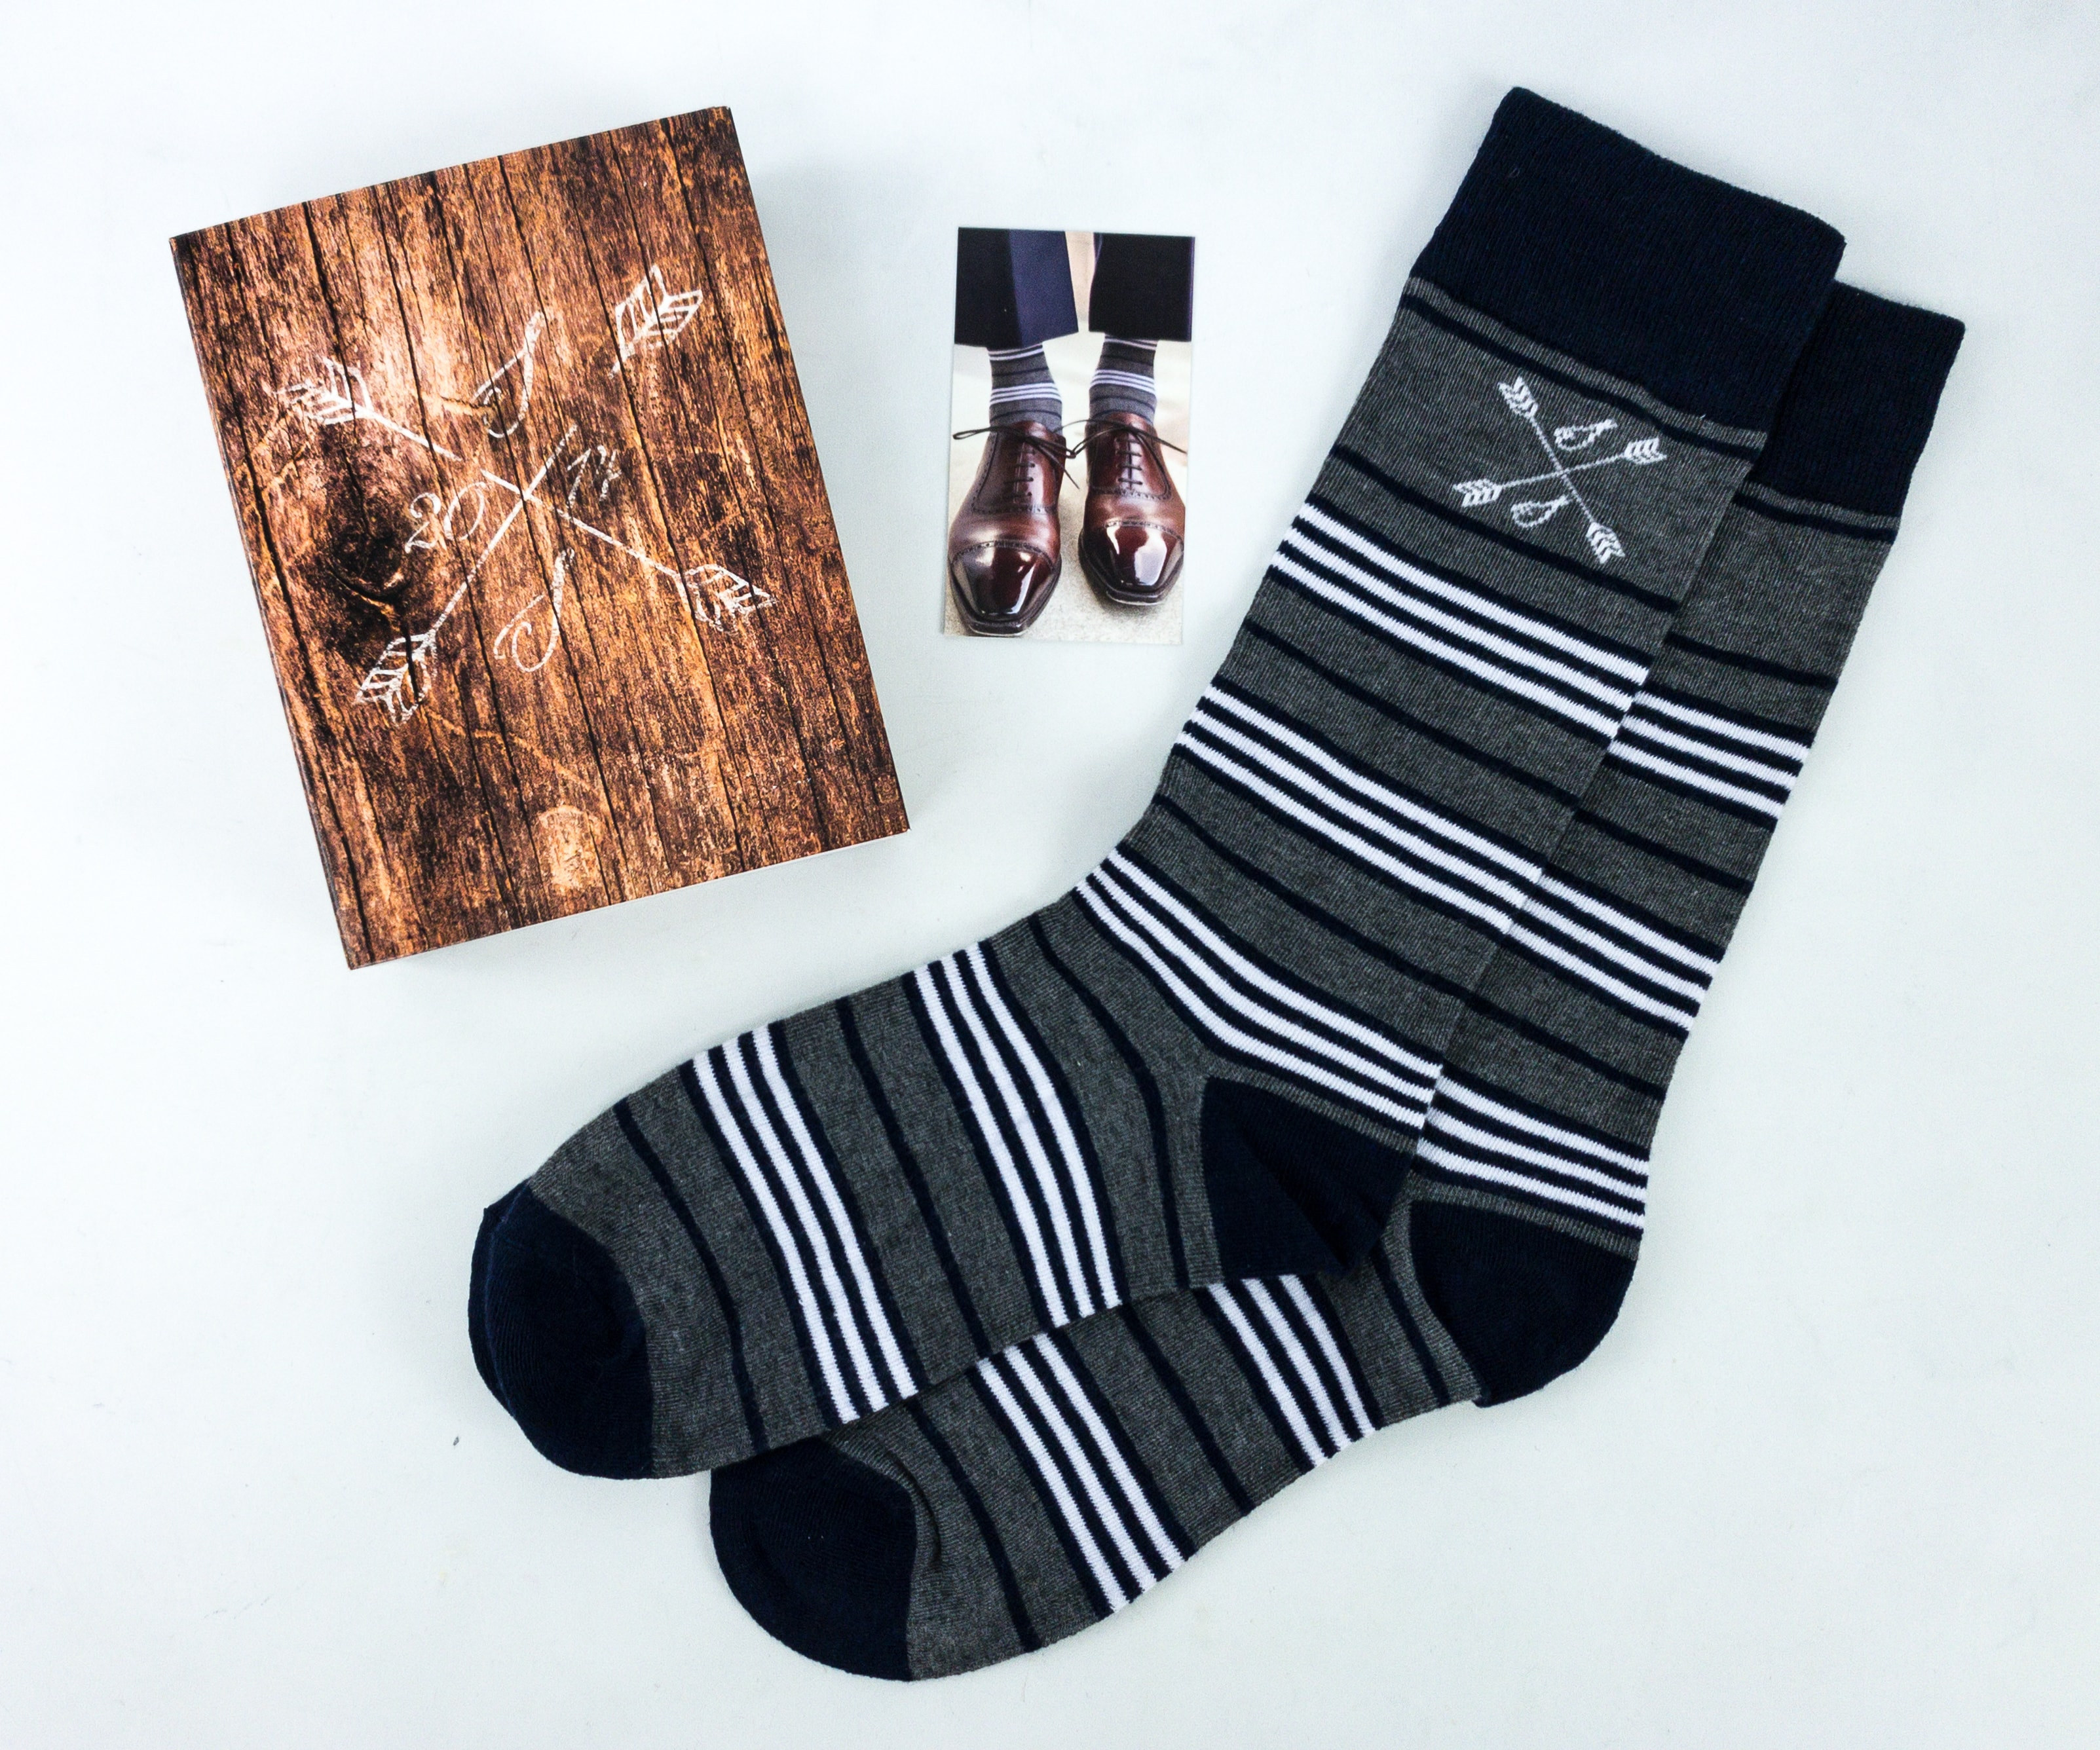 Southern Scholar December 2019 Men's Sock Subscription Box Review & Coupon